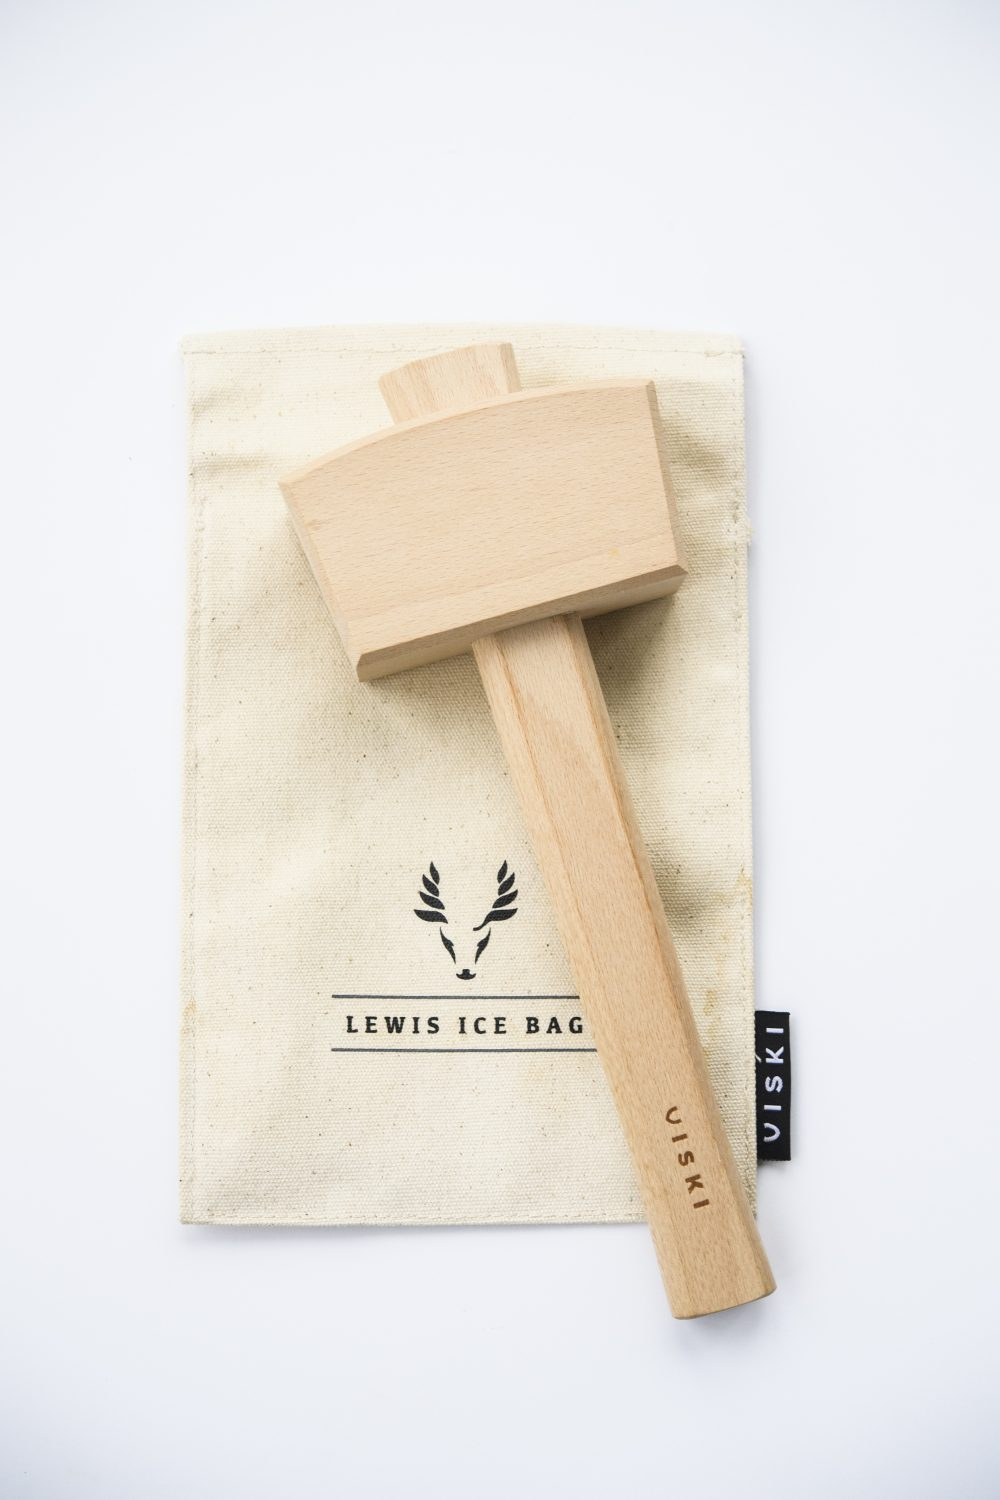 Keep crushed ice contained: The Lewis bag muffles the sound and soaks up the mess that pounding ice creates.